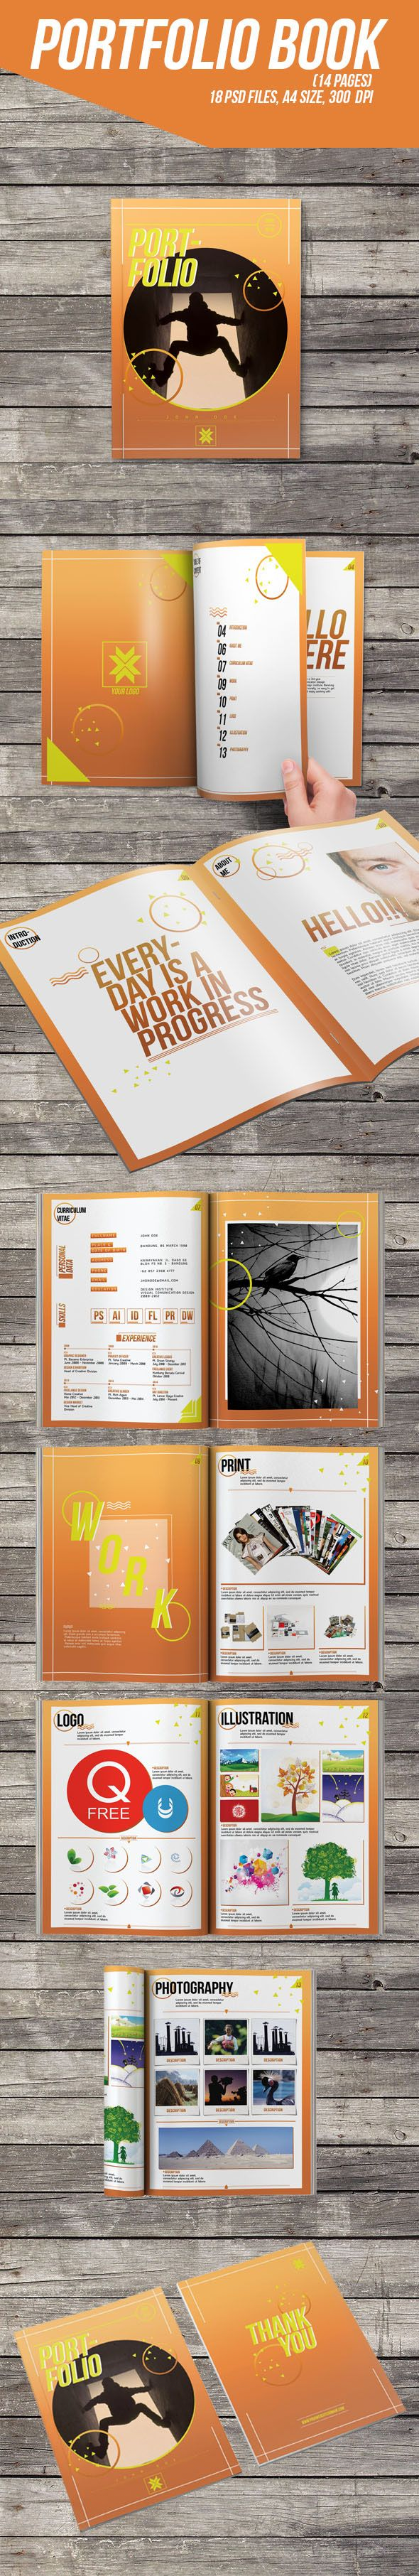 Portfolio Book (14 pages) on Behance